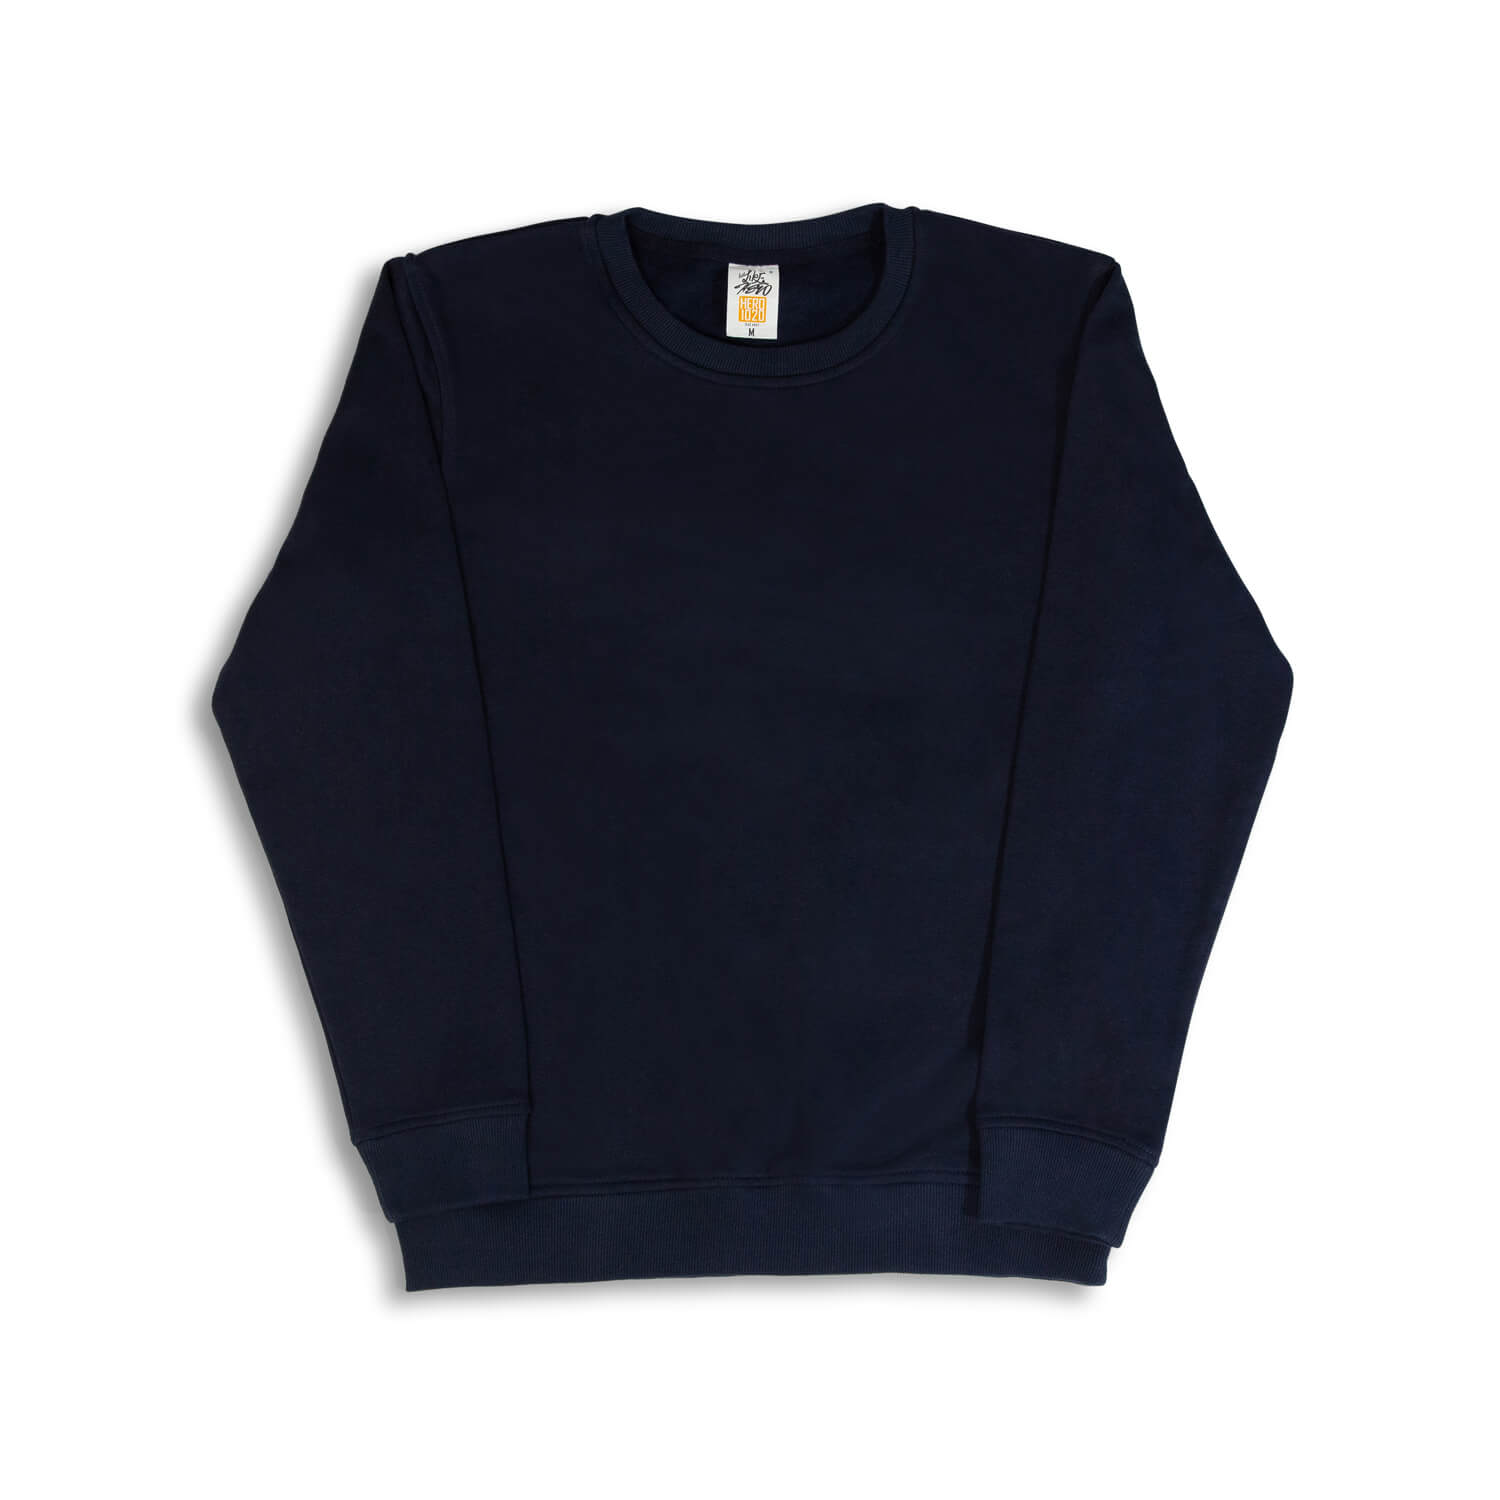 Le Café Bloom Crewneck Sweatshirt (Navy)